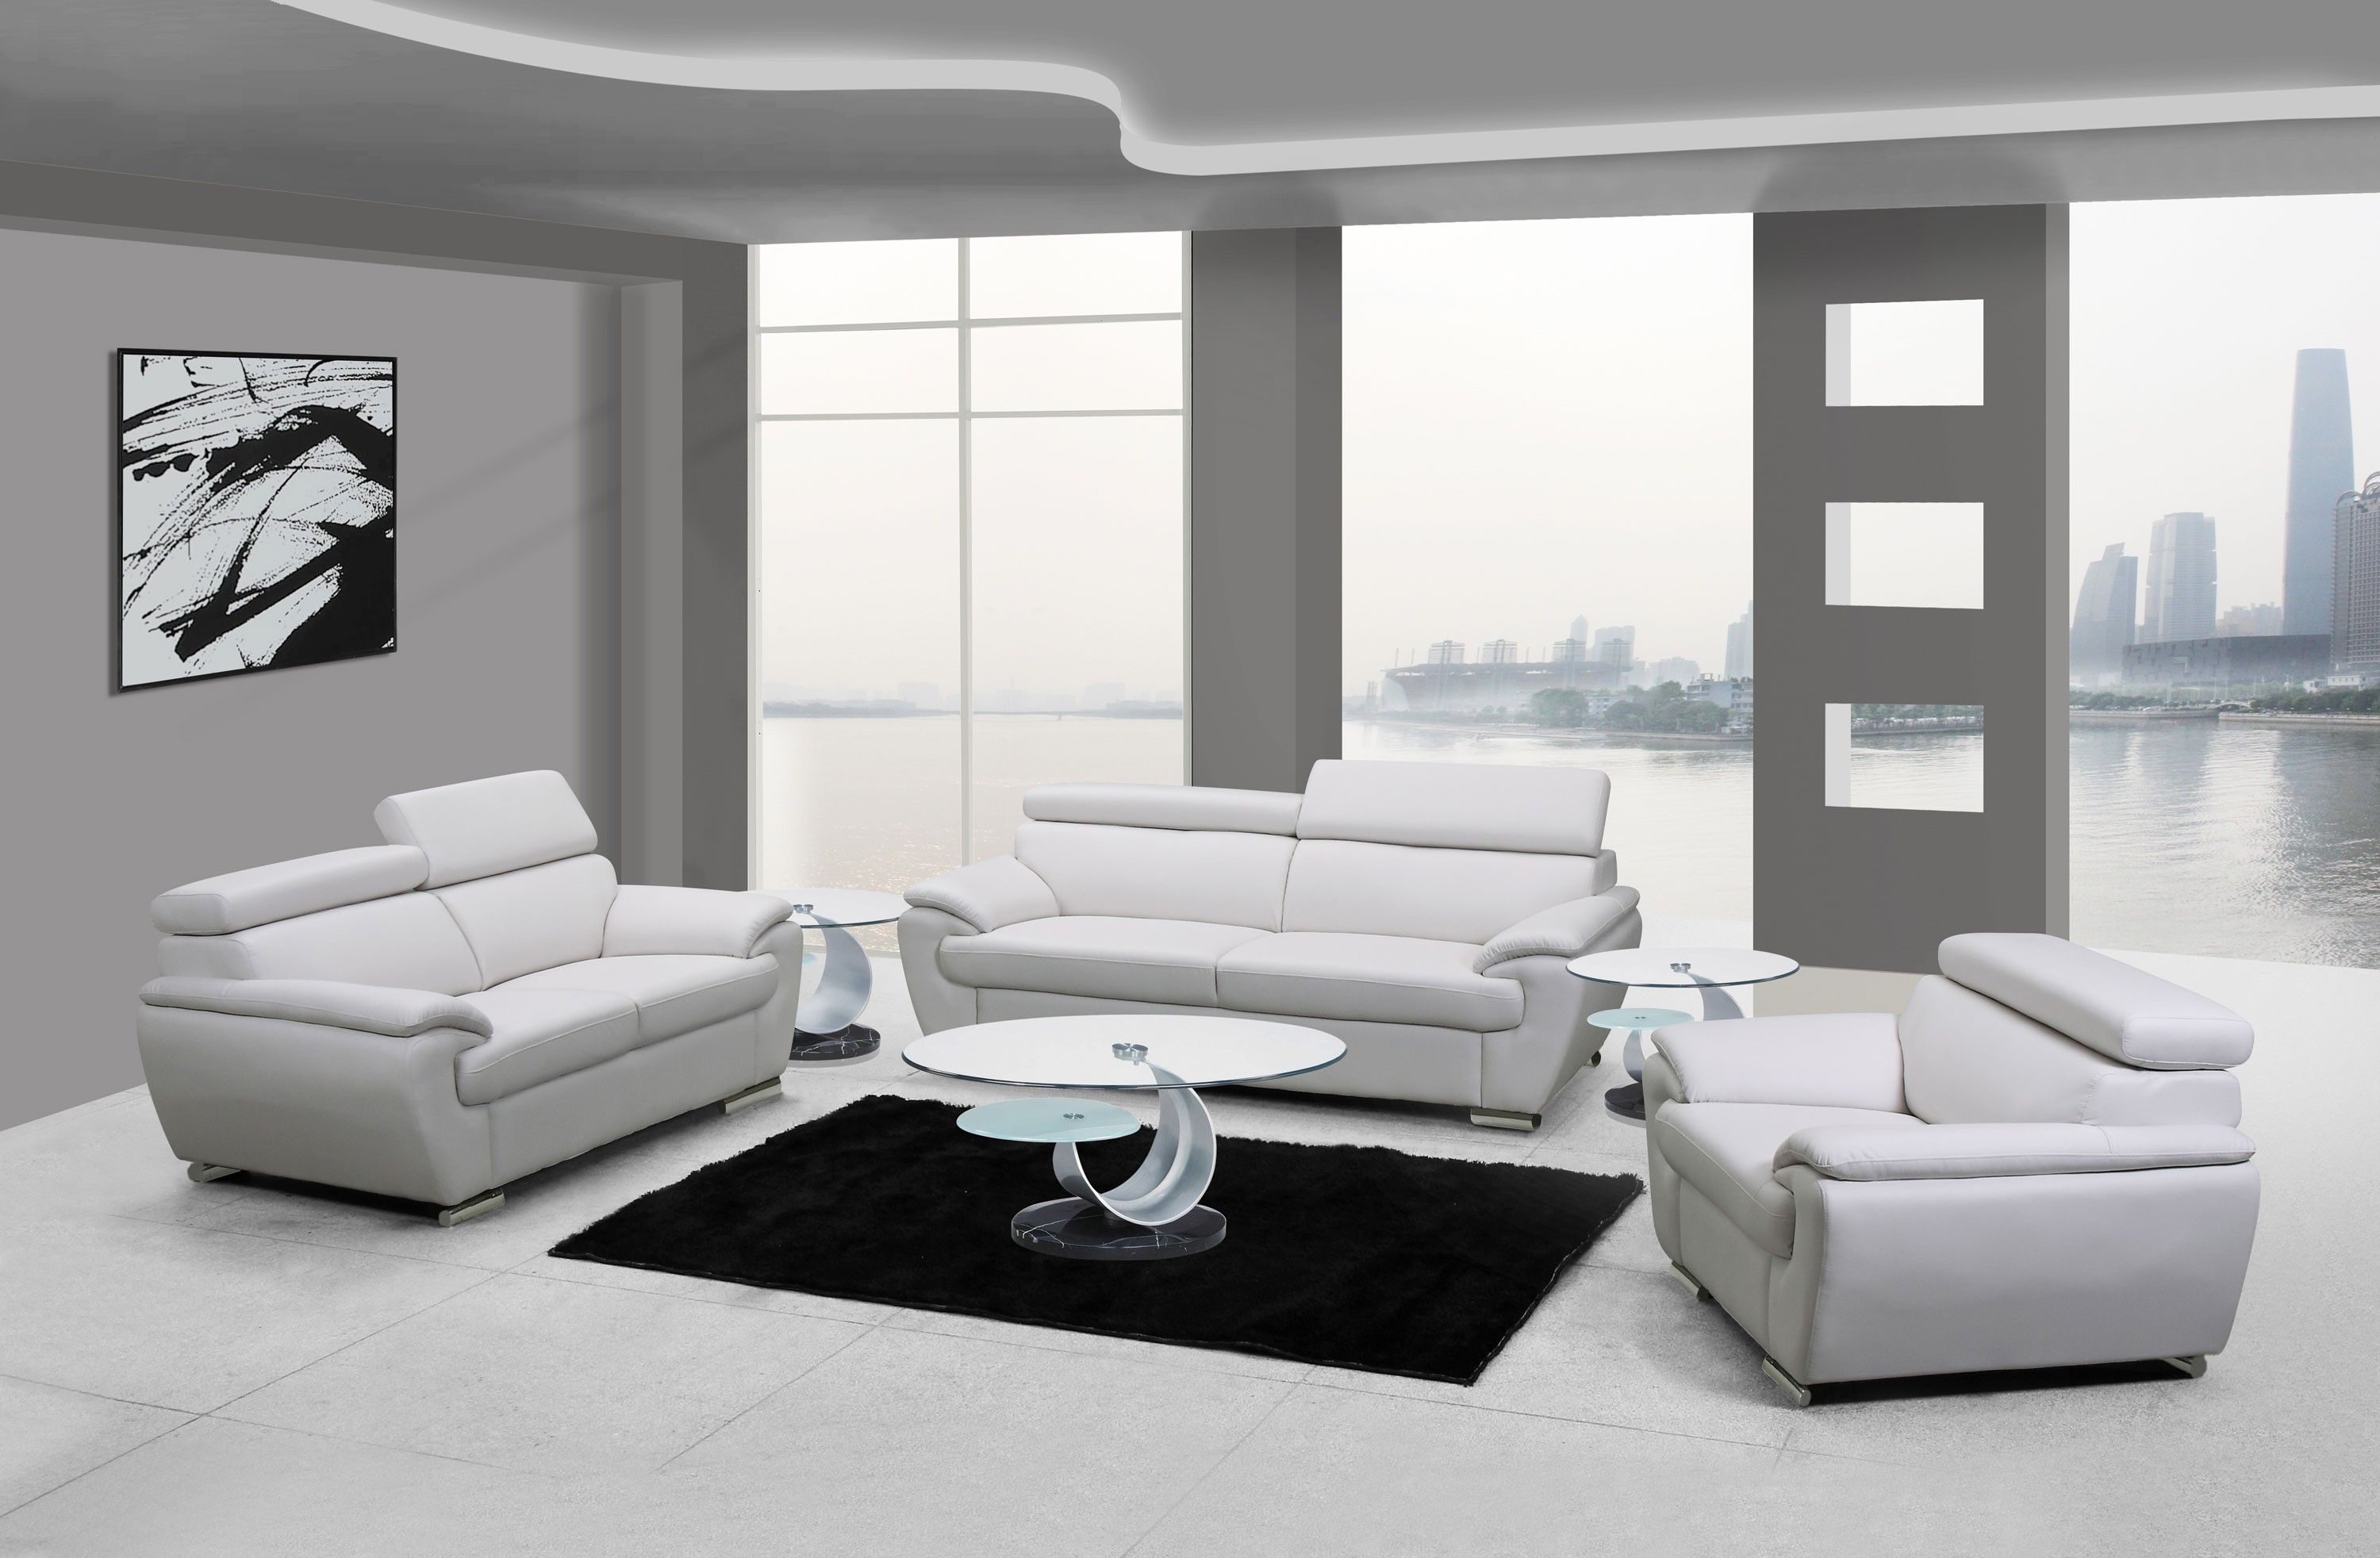 4571 Modern Living Room Set in White Leather by United